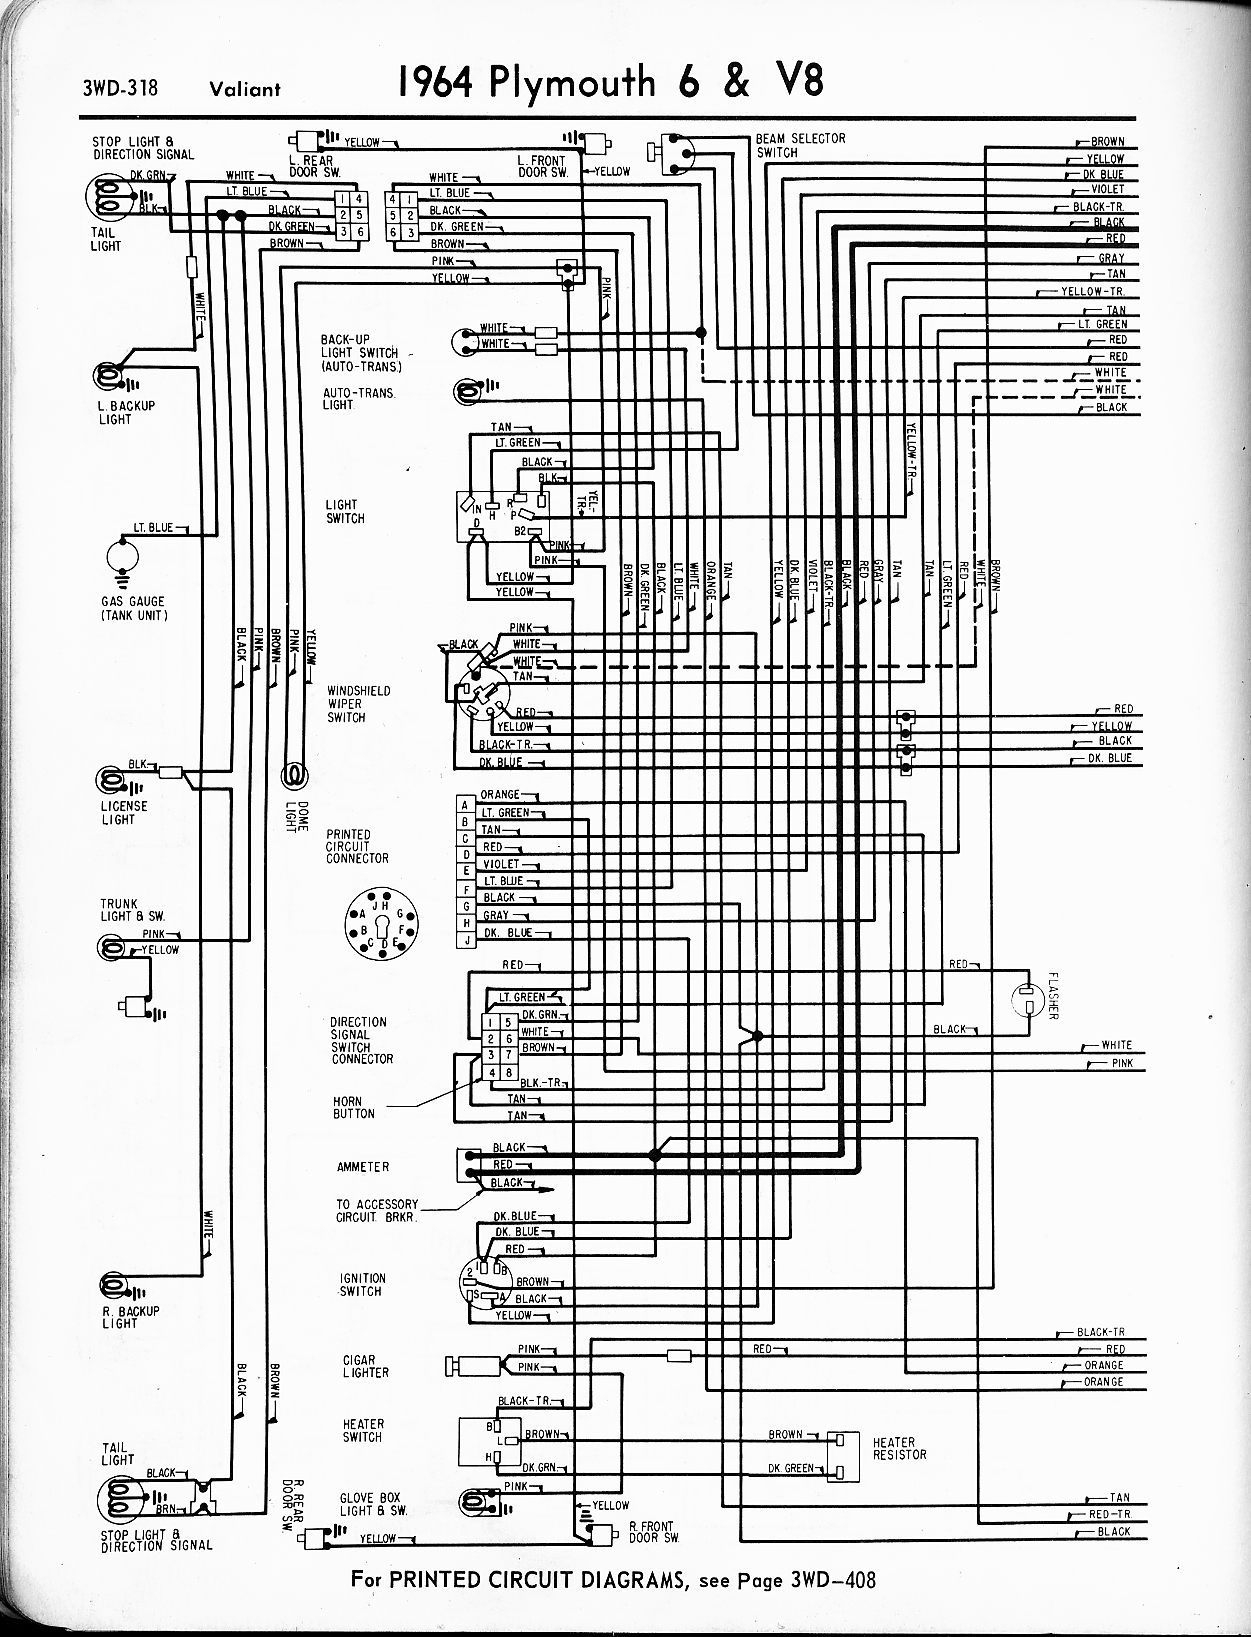 1955 Plymouth Belvedere Wiring Diagram : 38 Wiring Diagram